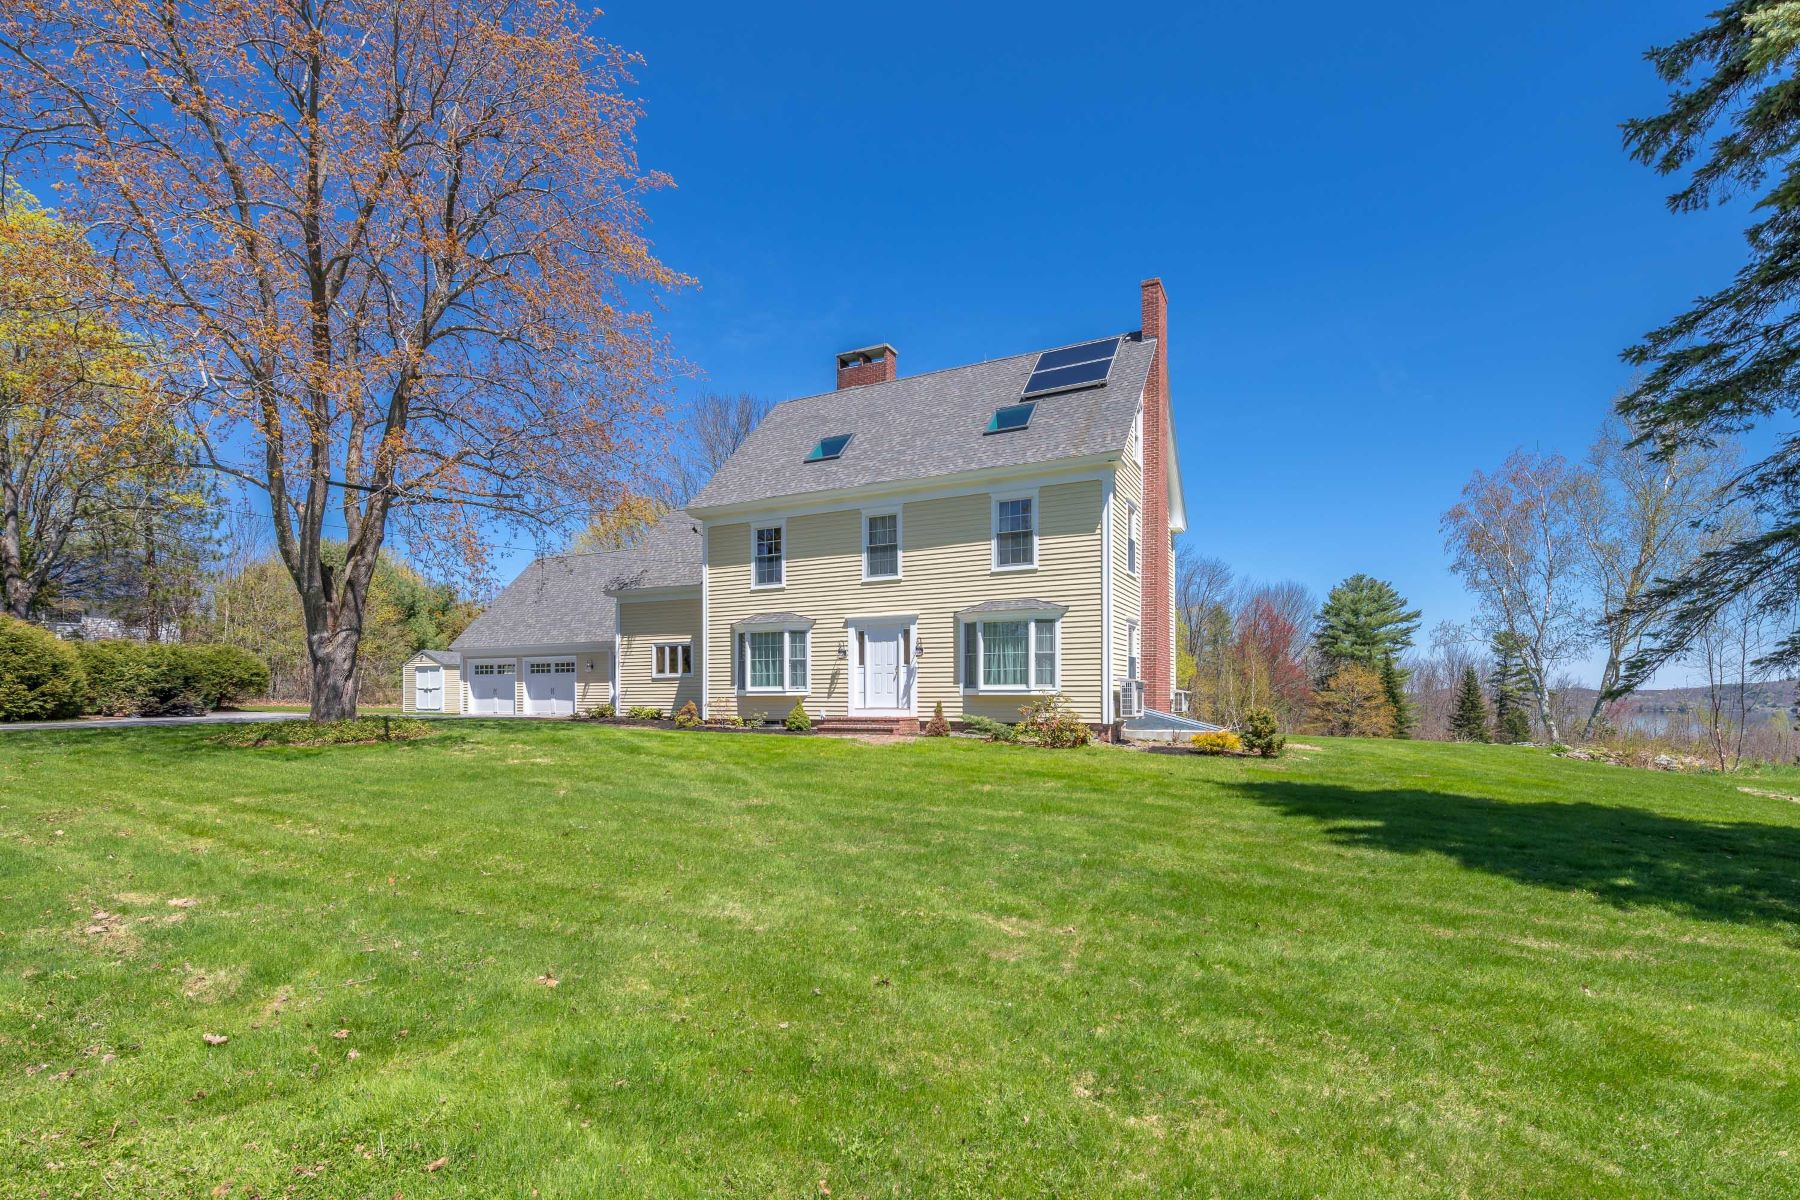 Single Family Homes for Sale at 525 Auburn Road Auburn, Maine 04210 United States